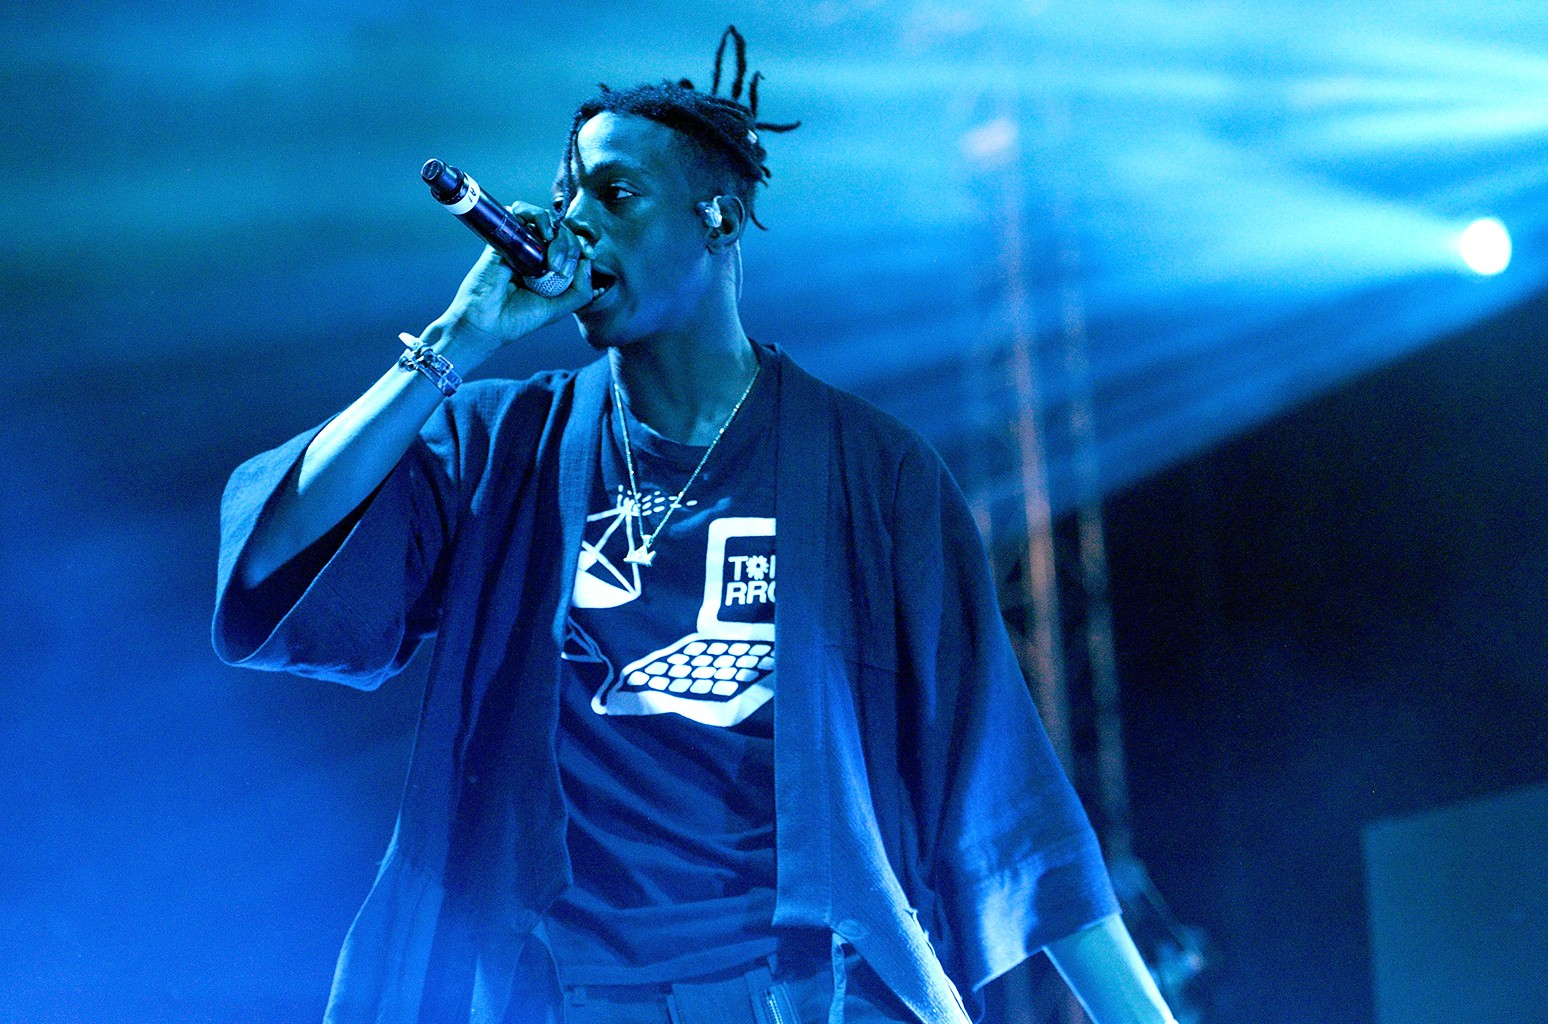 Joey Bada$$ performs during the Smokers Club 420 event at The Observatory on April 20, 2017 in Santa Ana, Calif.